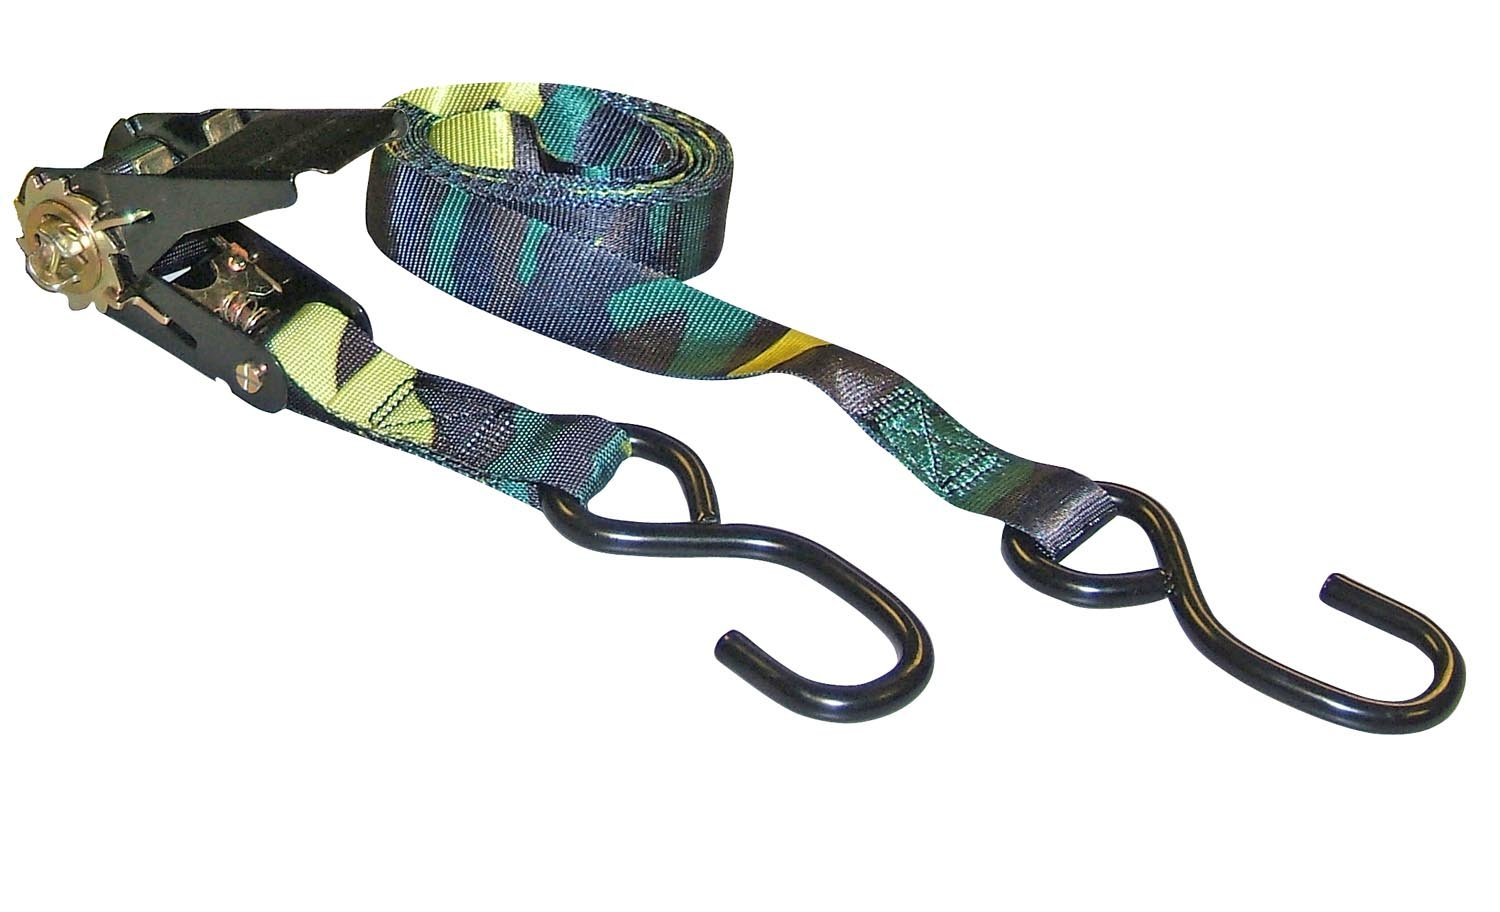 Erickson 01419 Camouflage 1'' x 10' Ratcheting Tie-Down Strap, 900 lb Load Capacity,  (Pack of 4)